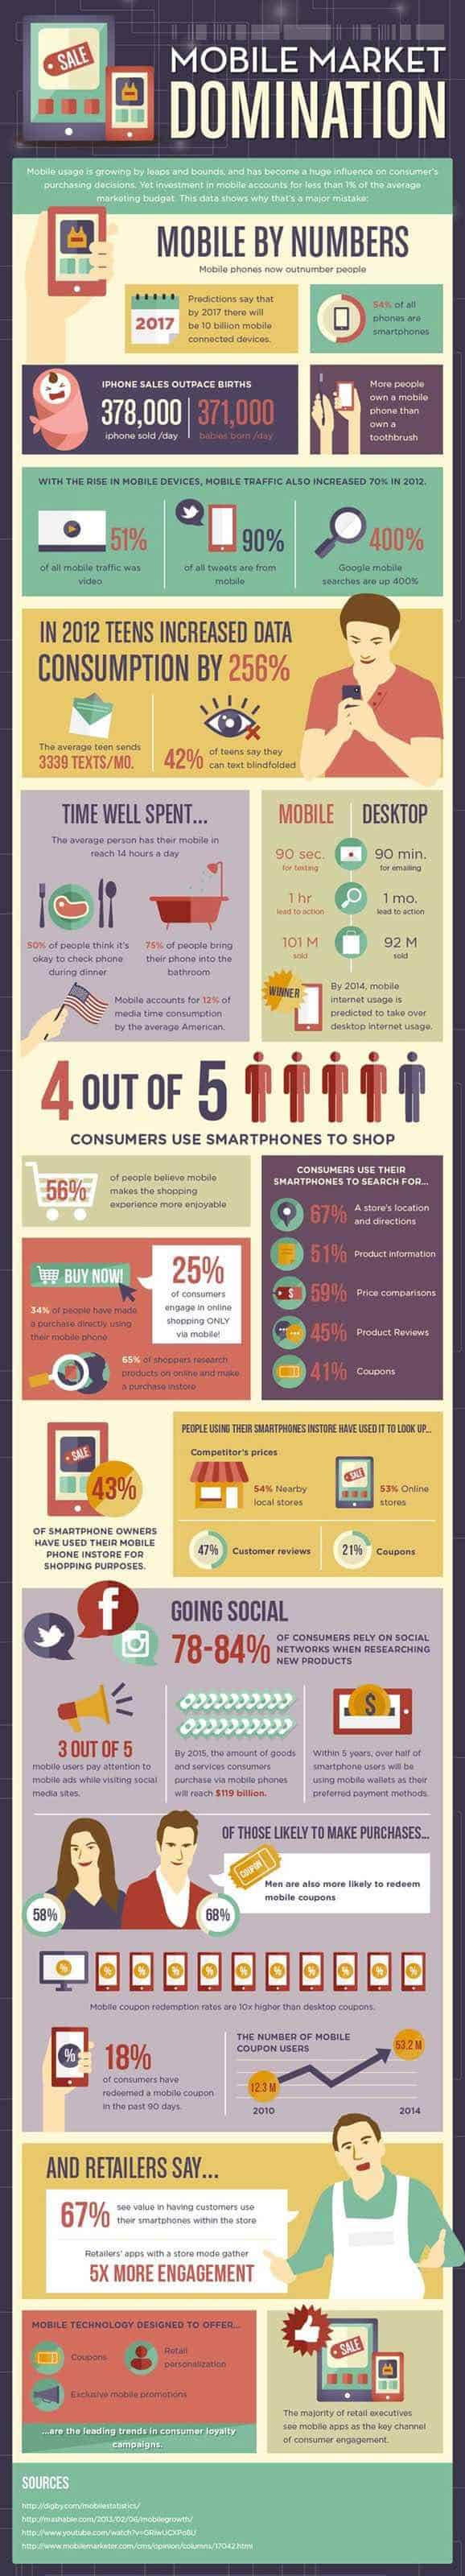 mobile marketing how to infographic